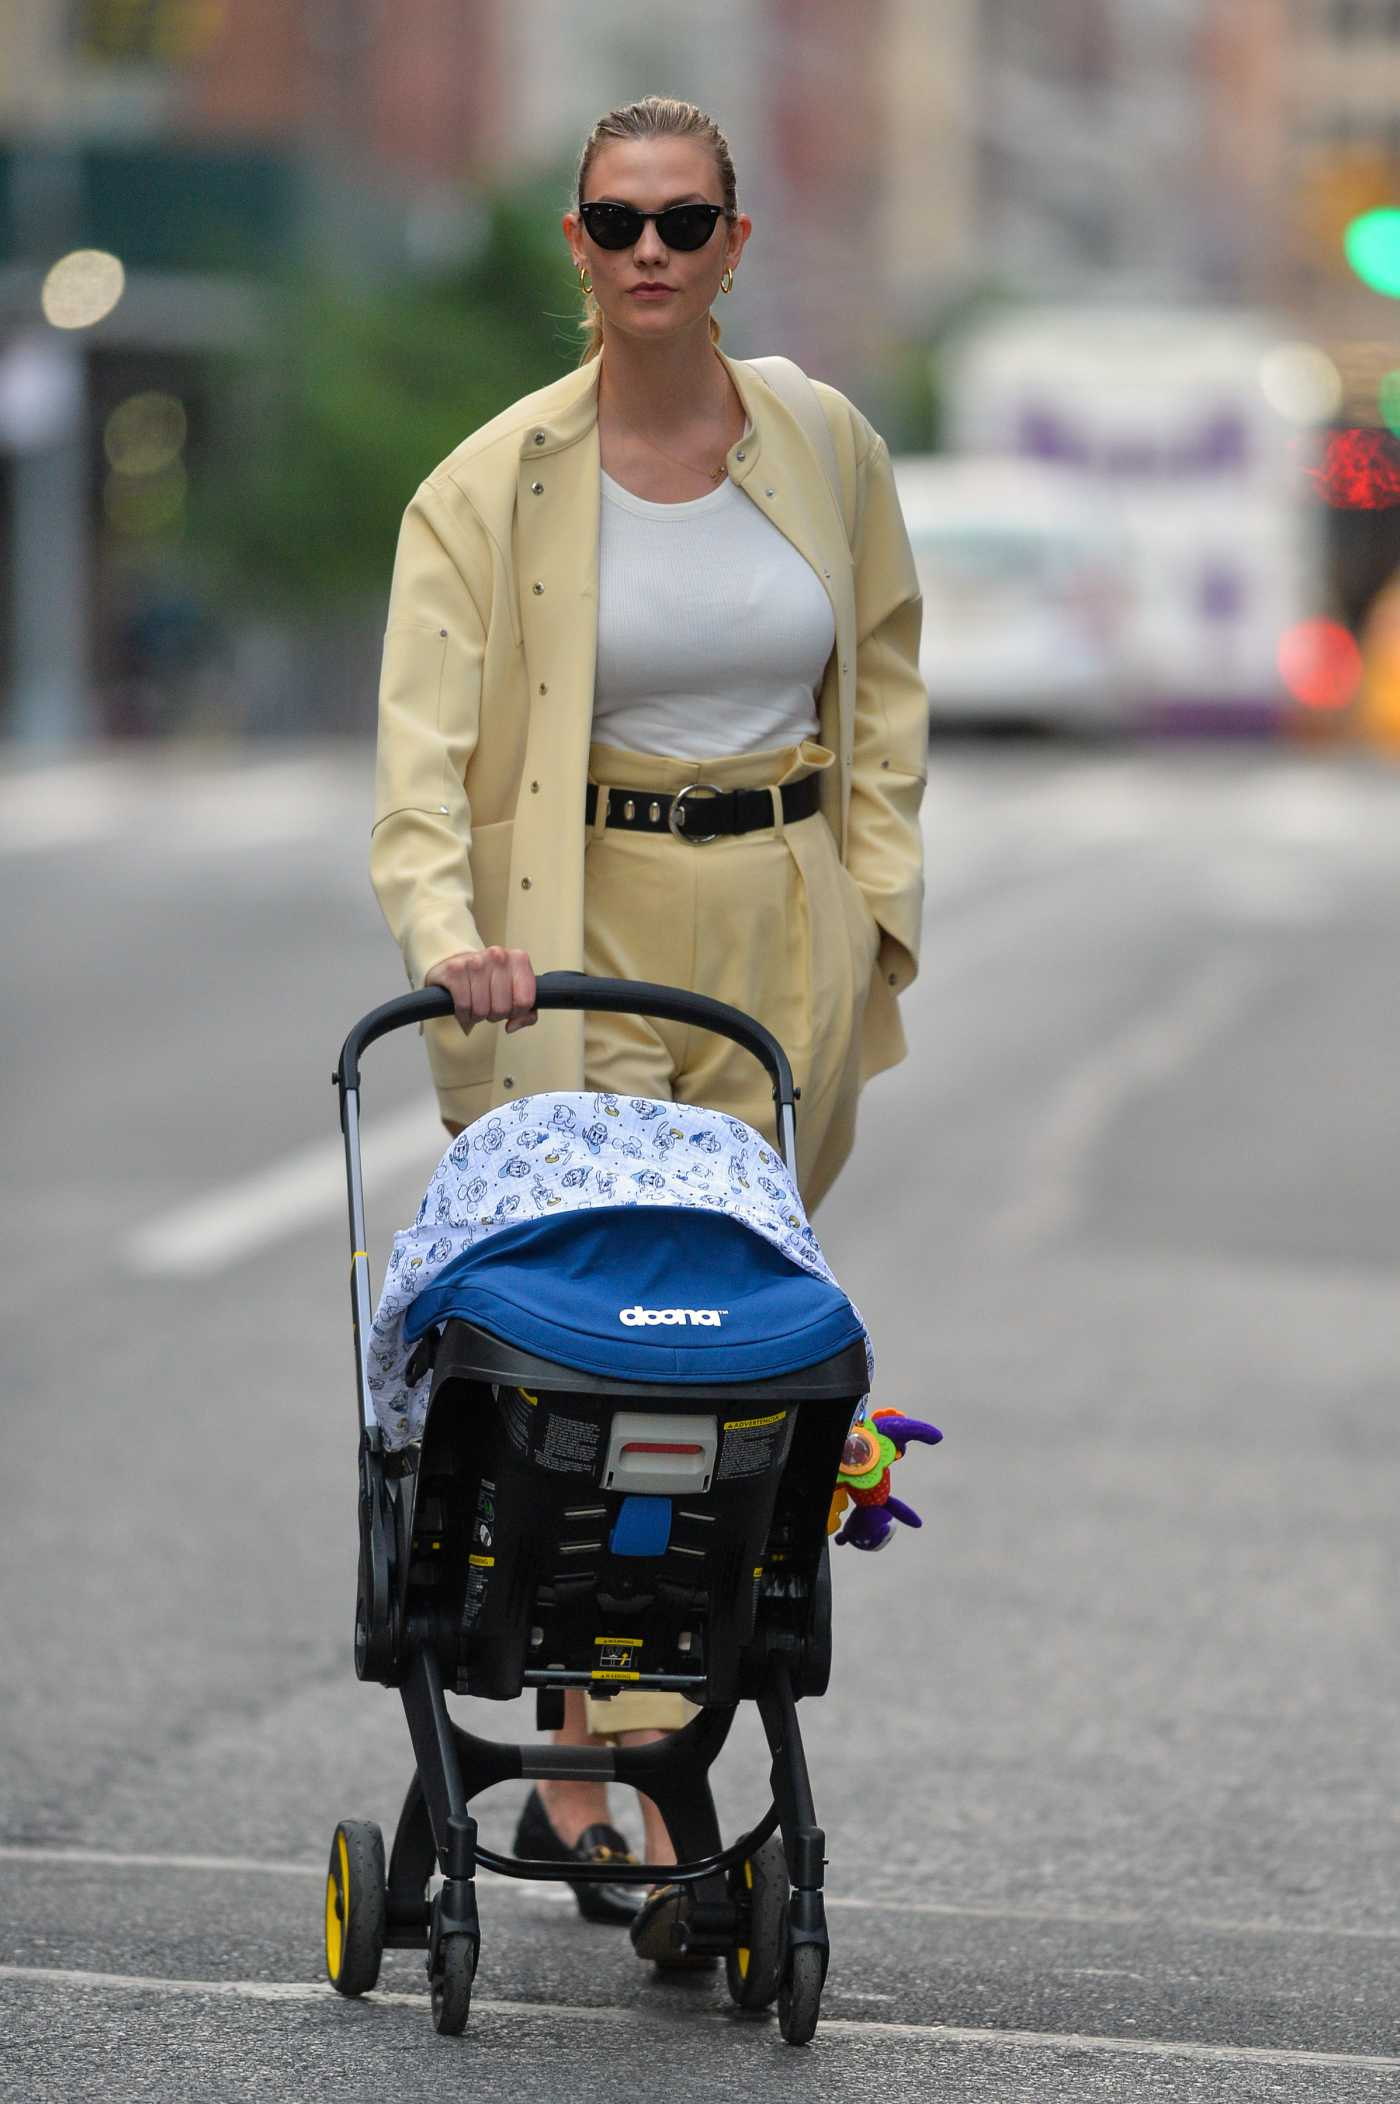 Karlie Kloss in a Yellow Suit Steps Out Pushing a Pram in New York 05/23/2021